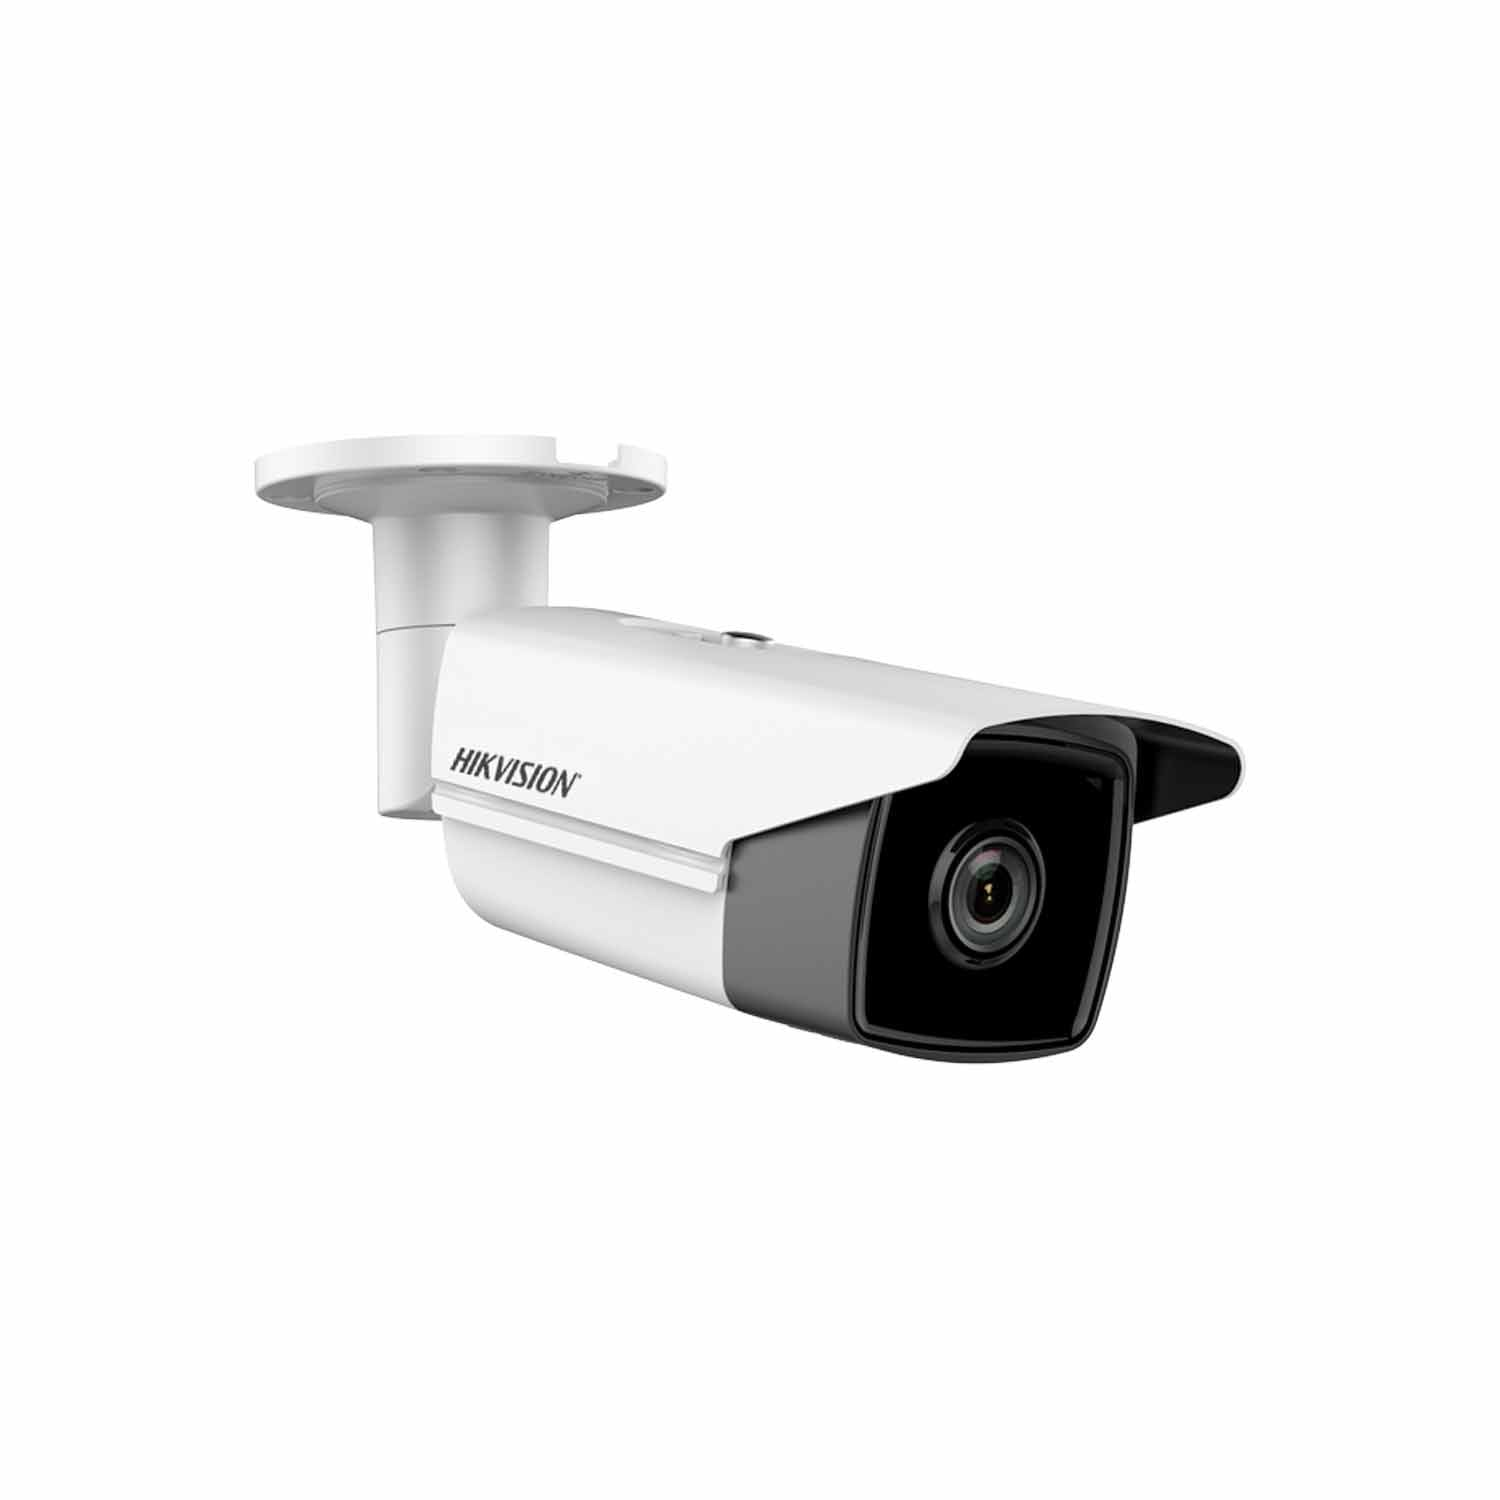 Hikvision DS-2CD2T55FWD-IS 5MP Bullet Camera